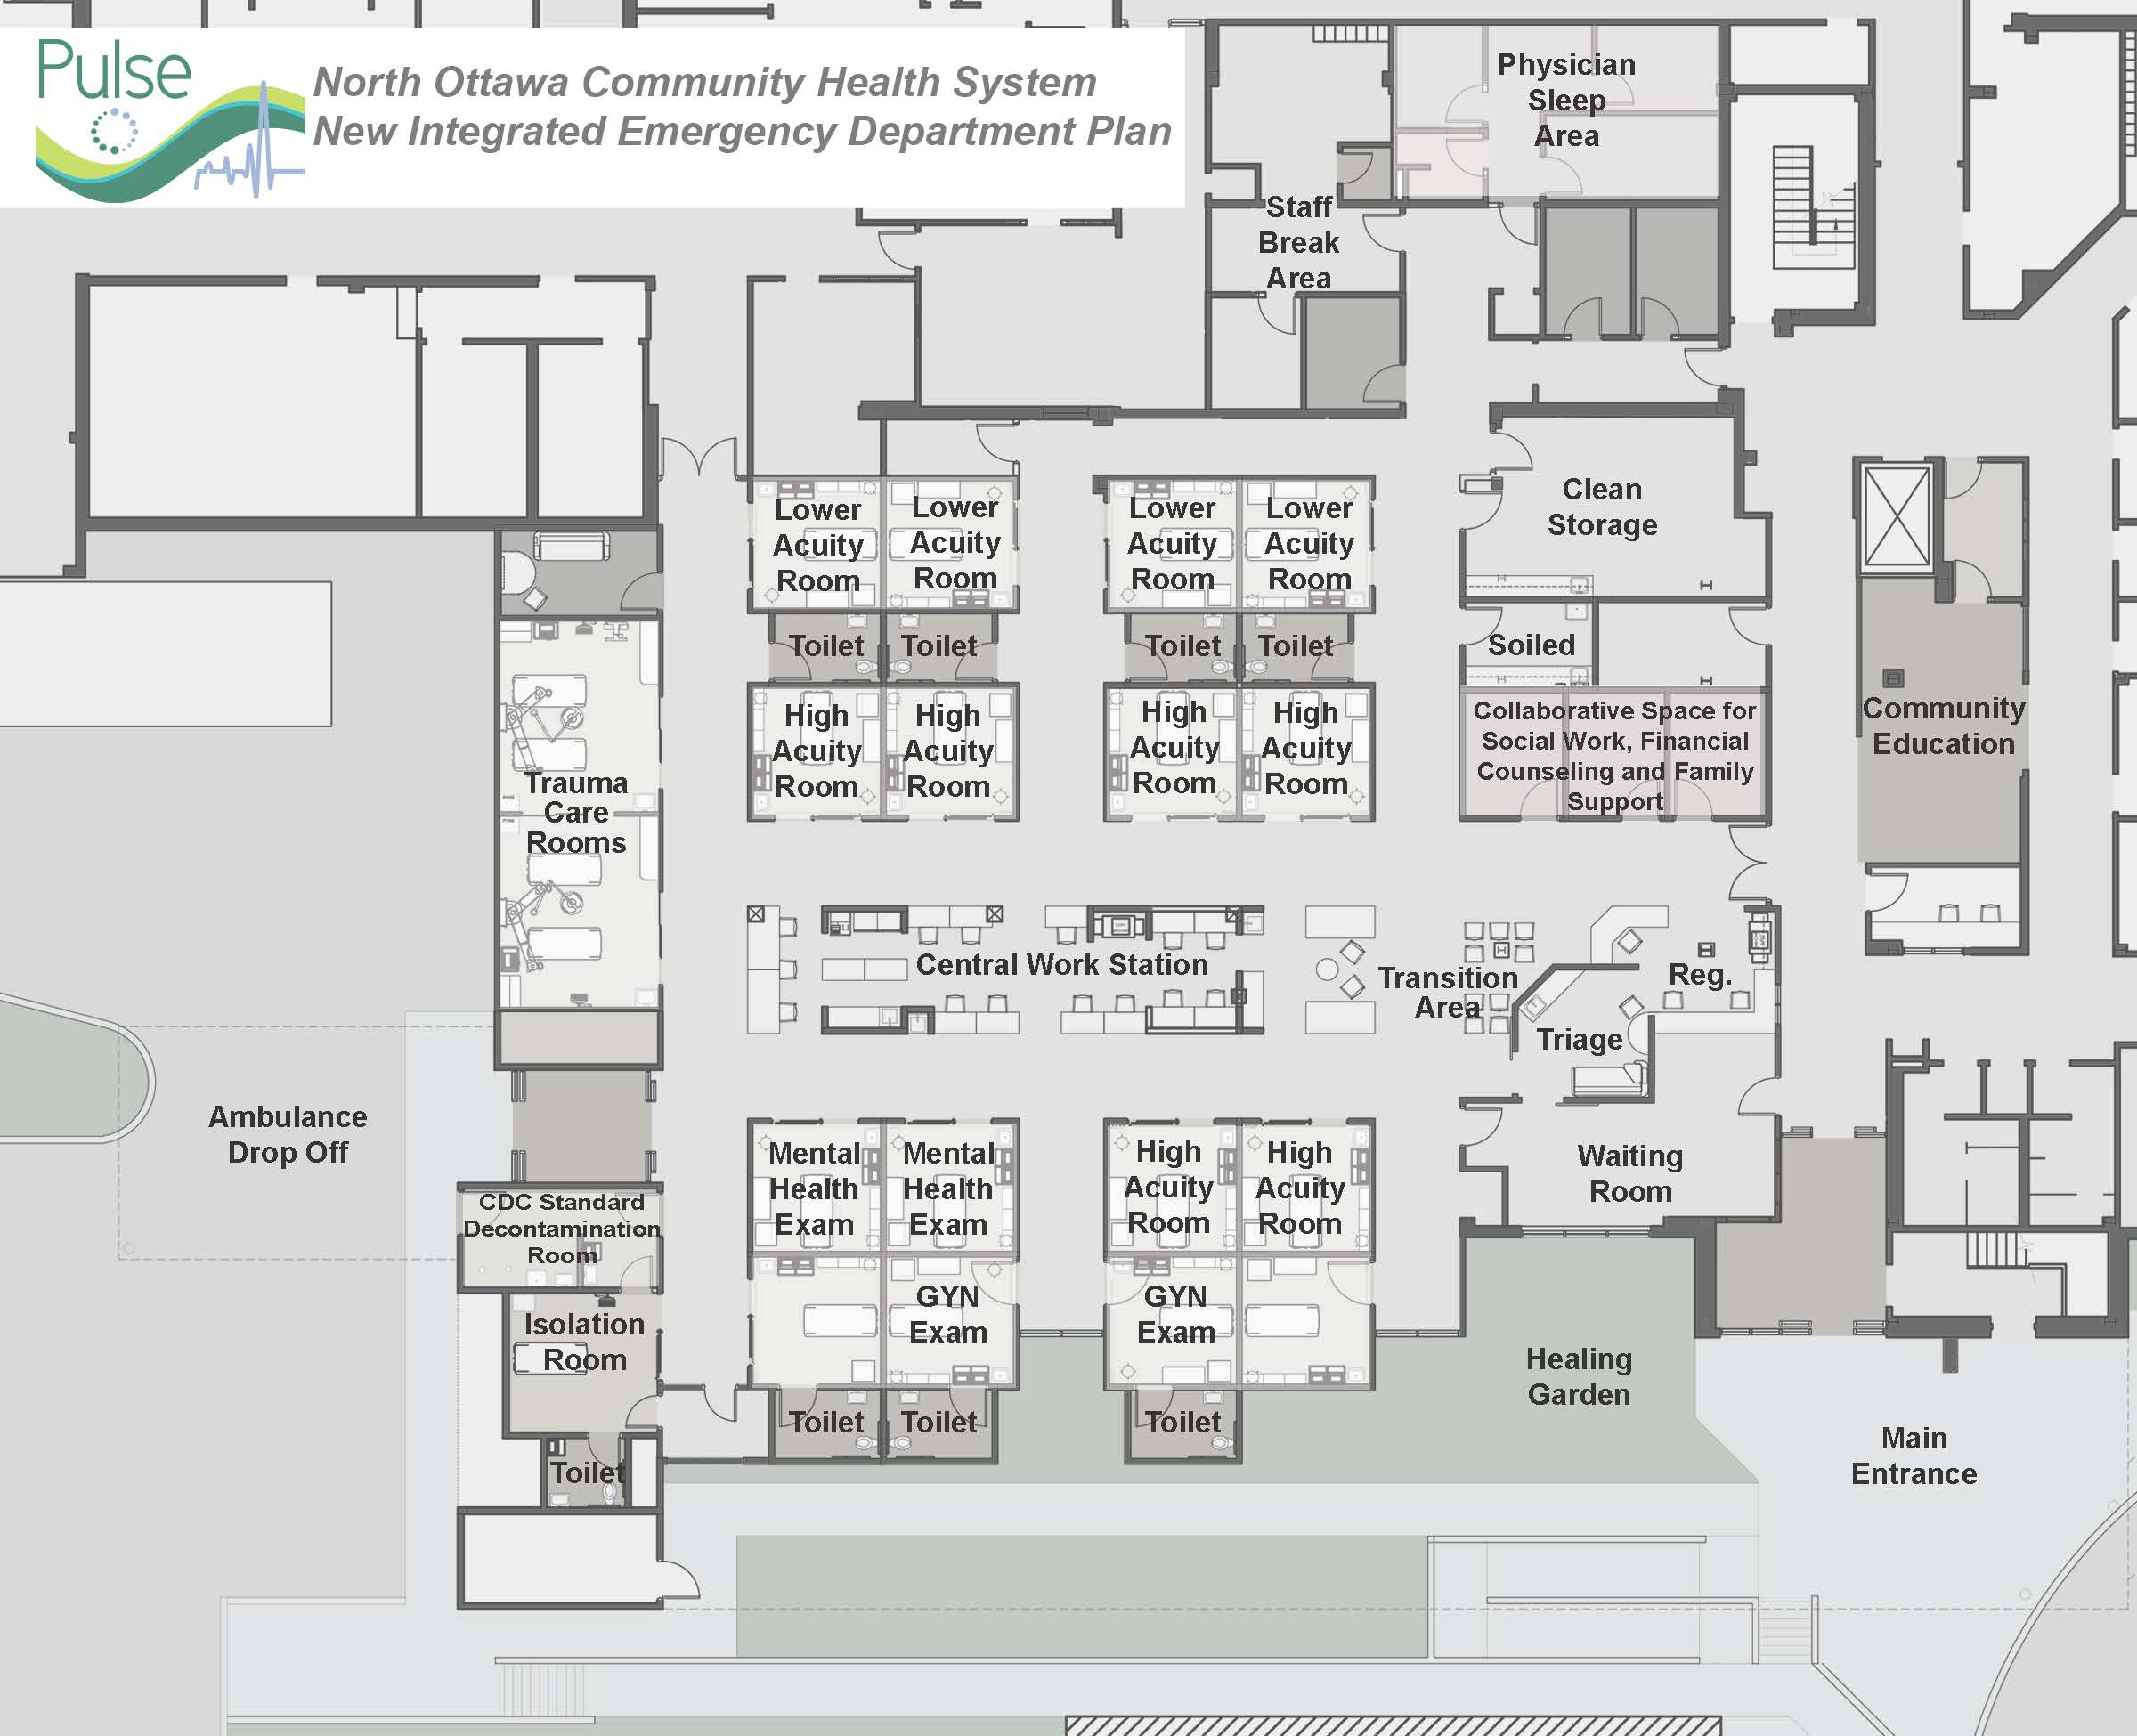 Lakeshore health system unveils plans for state of the art emergency department with redesigned for Emergency room design floor plan